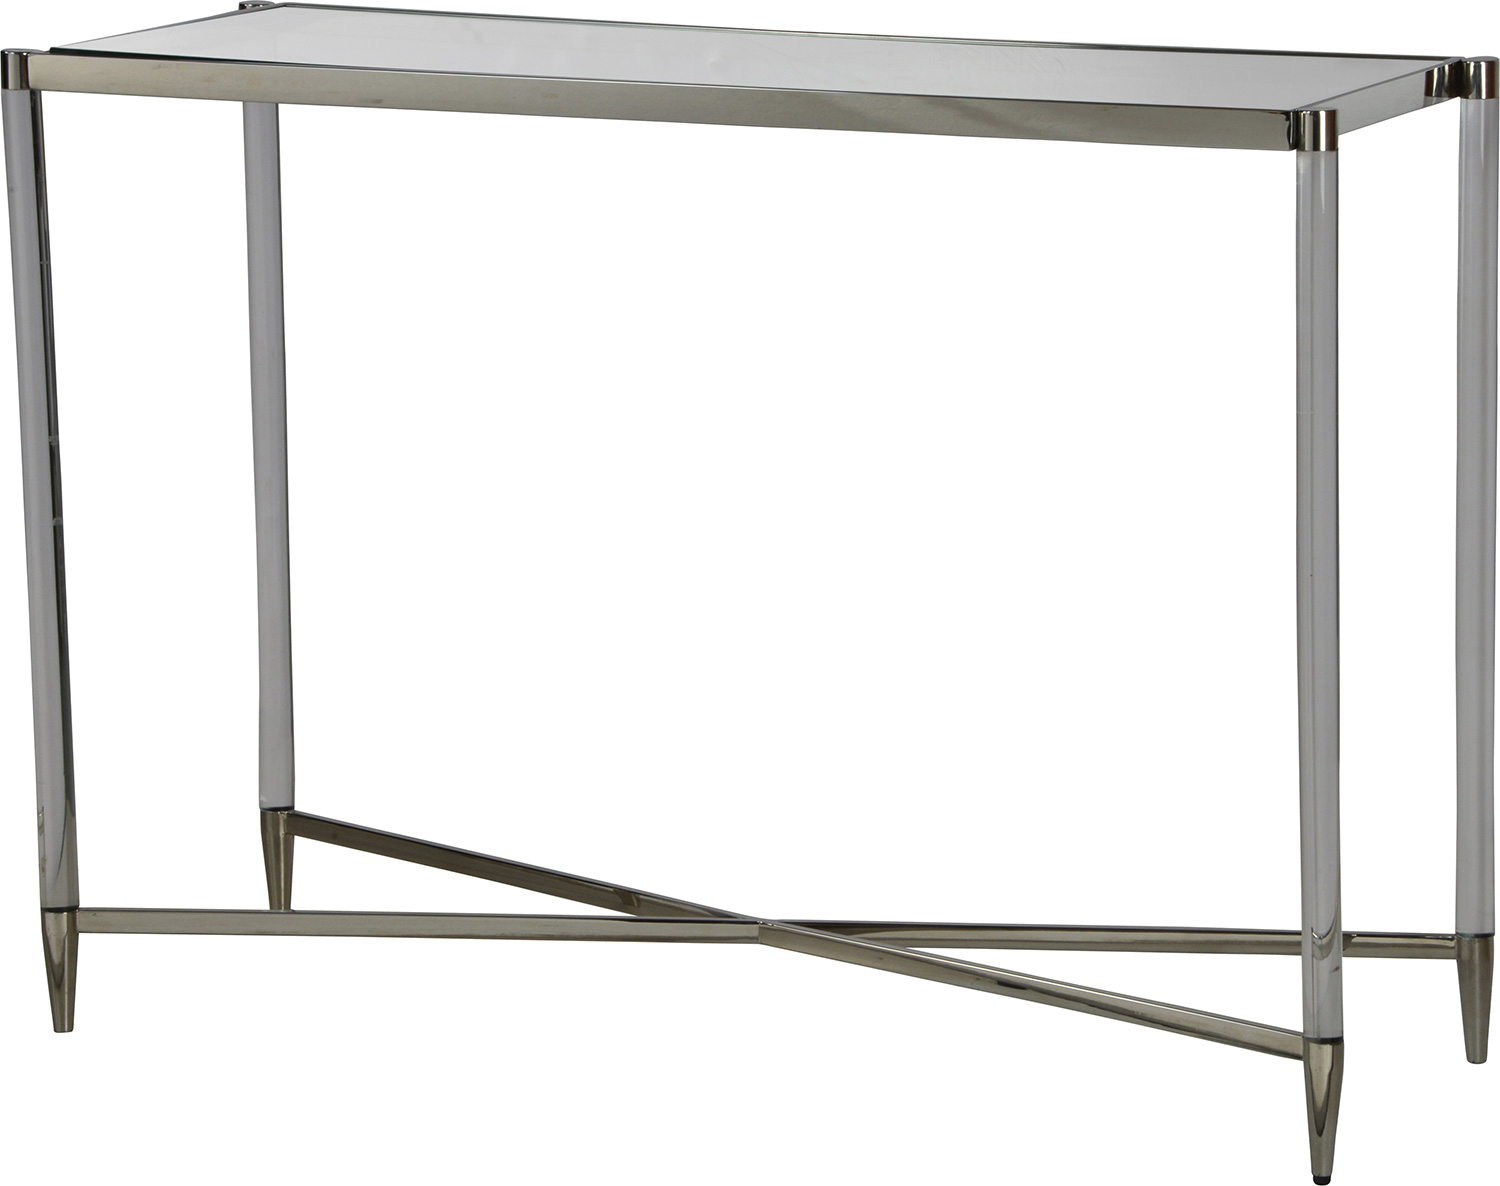 Ren-Wil Zelda Console Table - Chrome